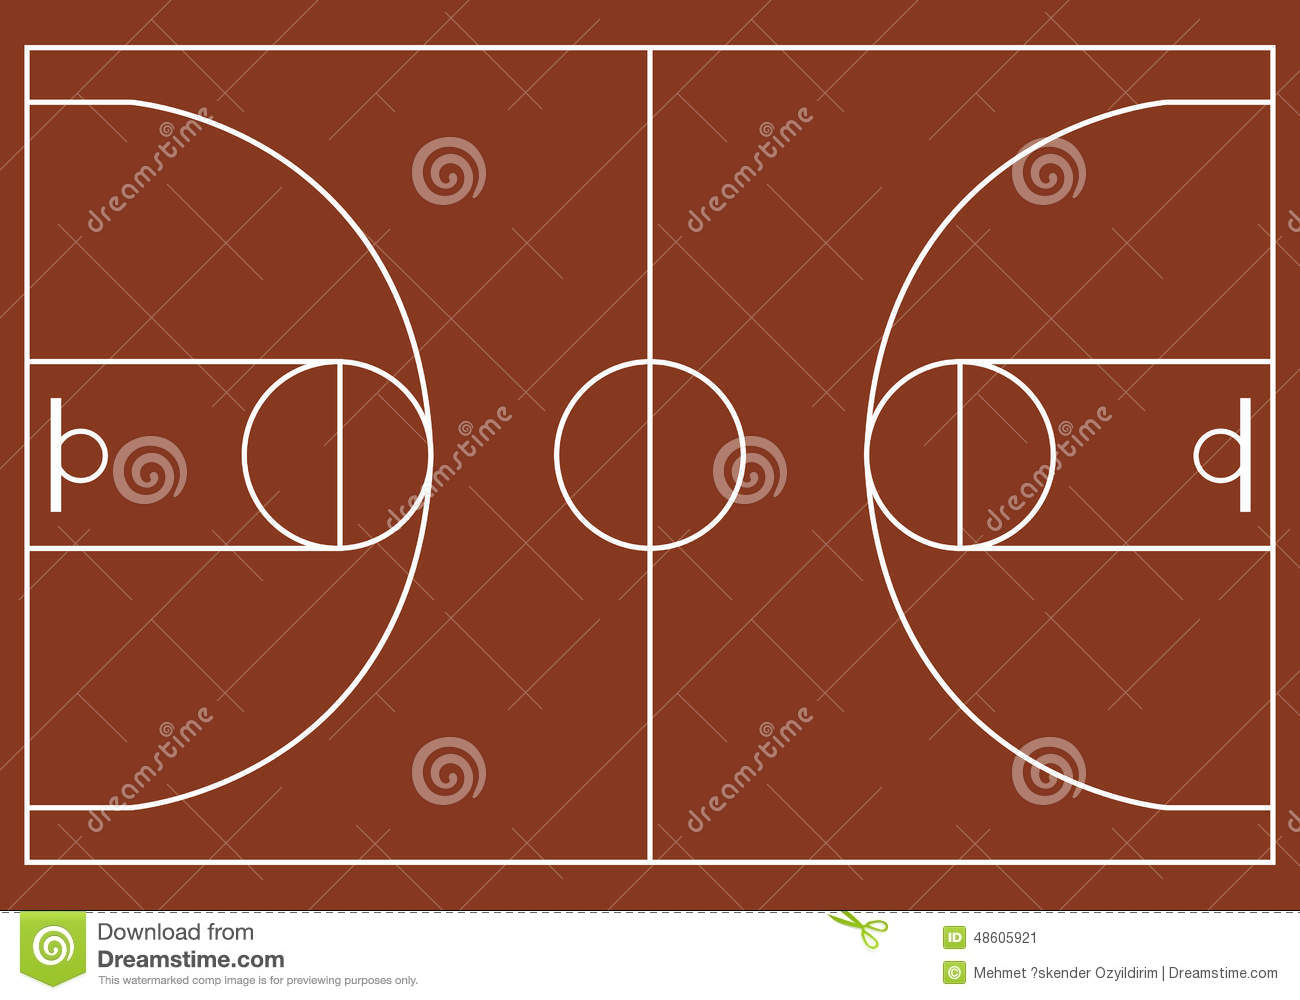 Basketball Court Abstract Vector Background Mr No Pr No 2 67 2